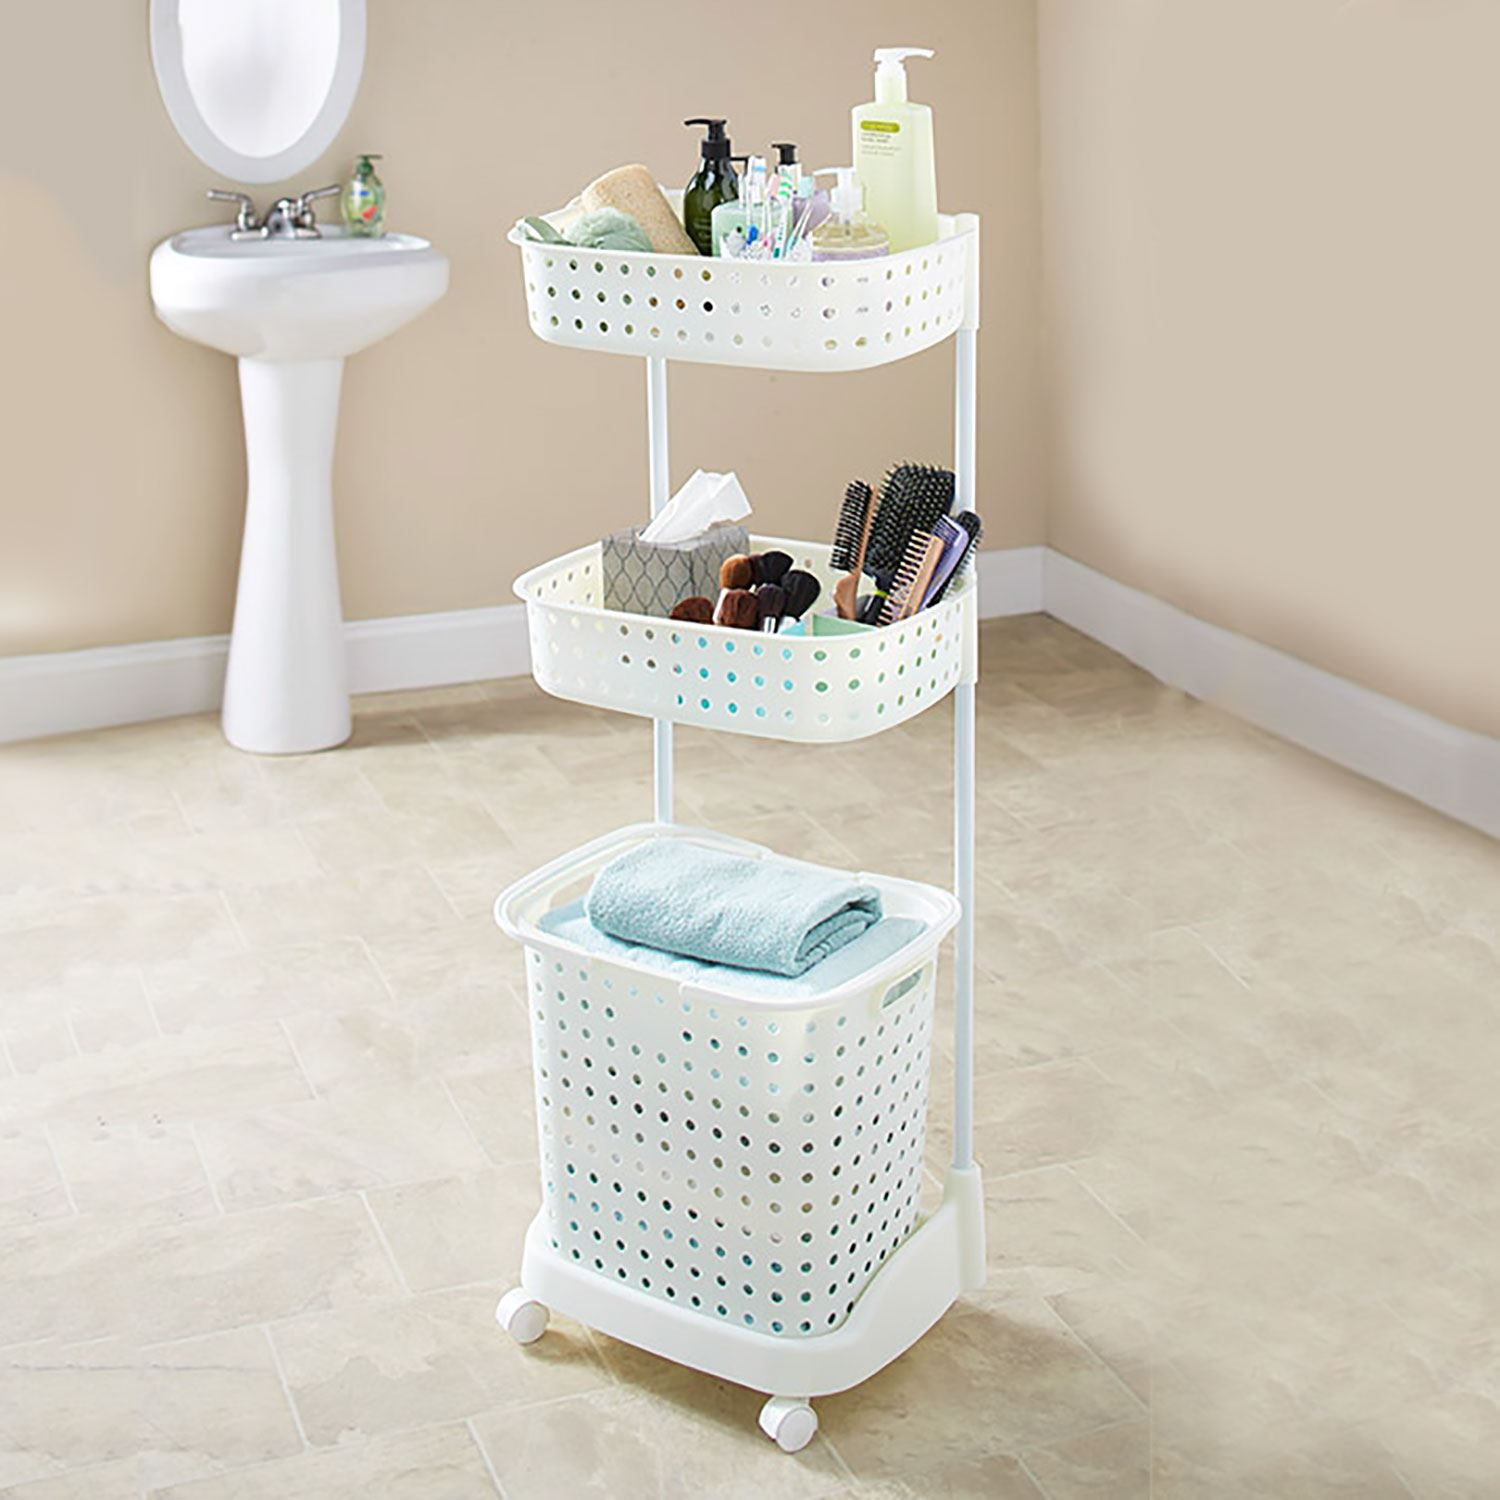 concepts this find of the glass convenience modern more is pin corner caddies tier essence styling bathroom shop and classic on shelf